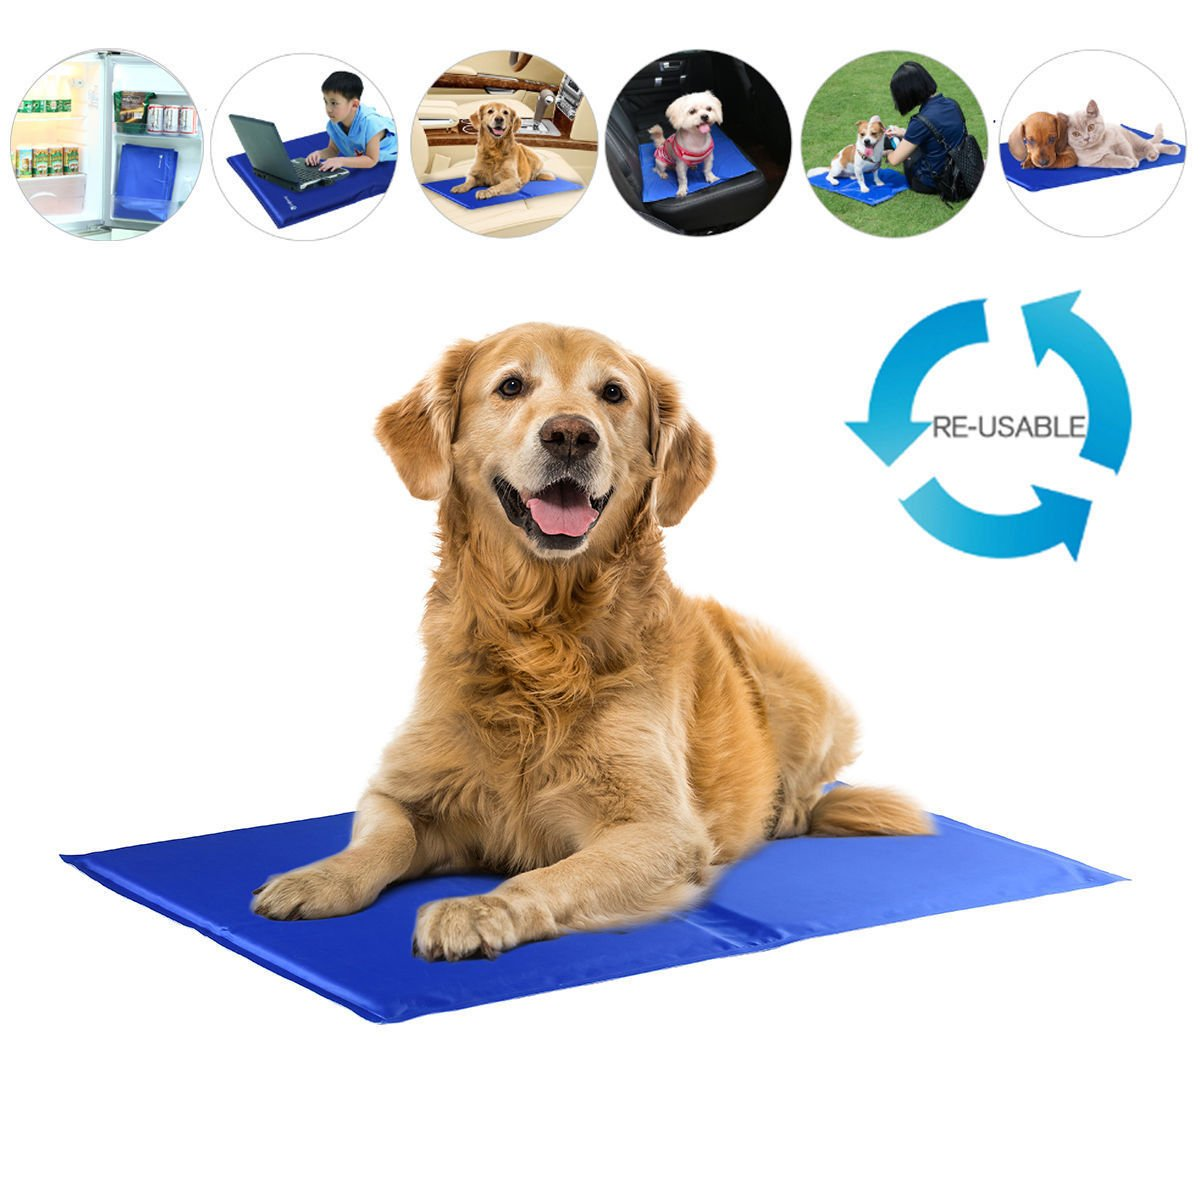 colors vary jw food amazon dp mat company place may pet in supplies stay ca